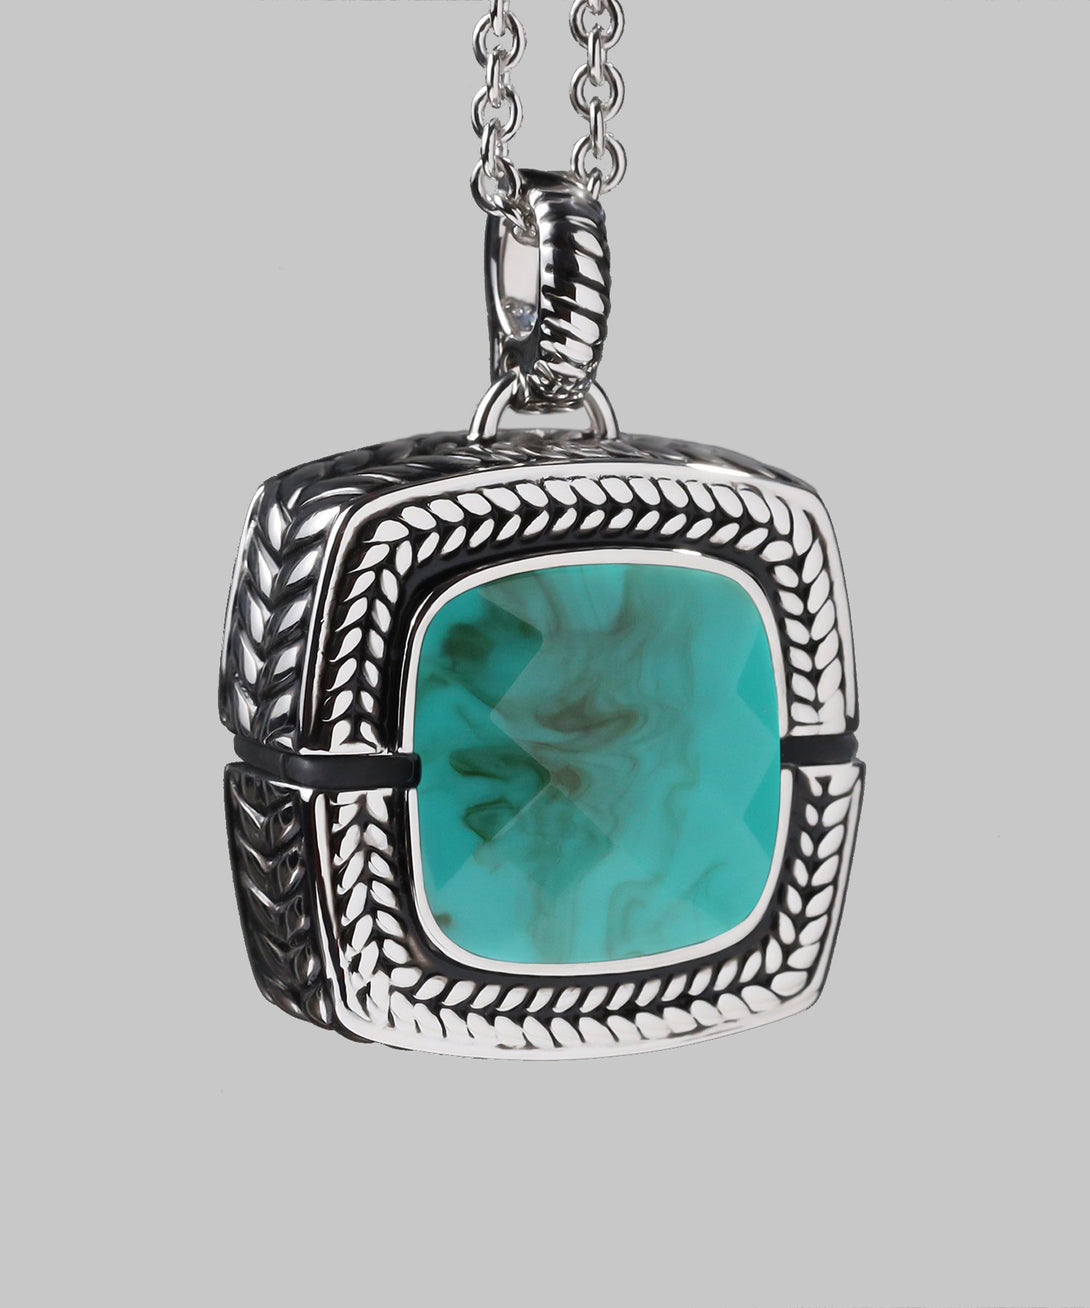 Sally Emergency Bluetooth Turquoise Blue And Rhodium Necklace And Removable Pendant (front)